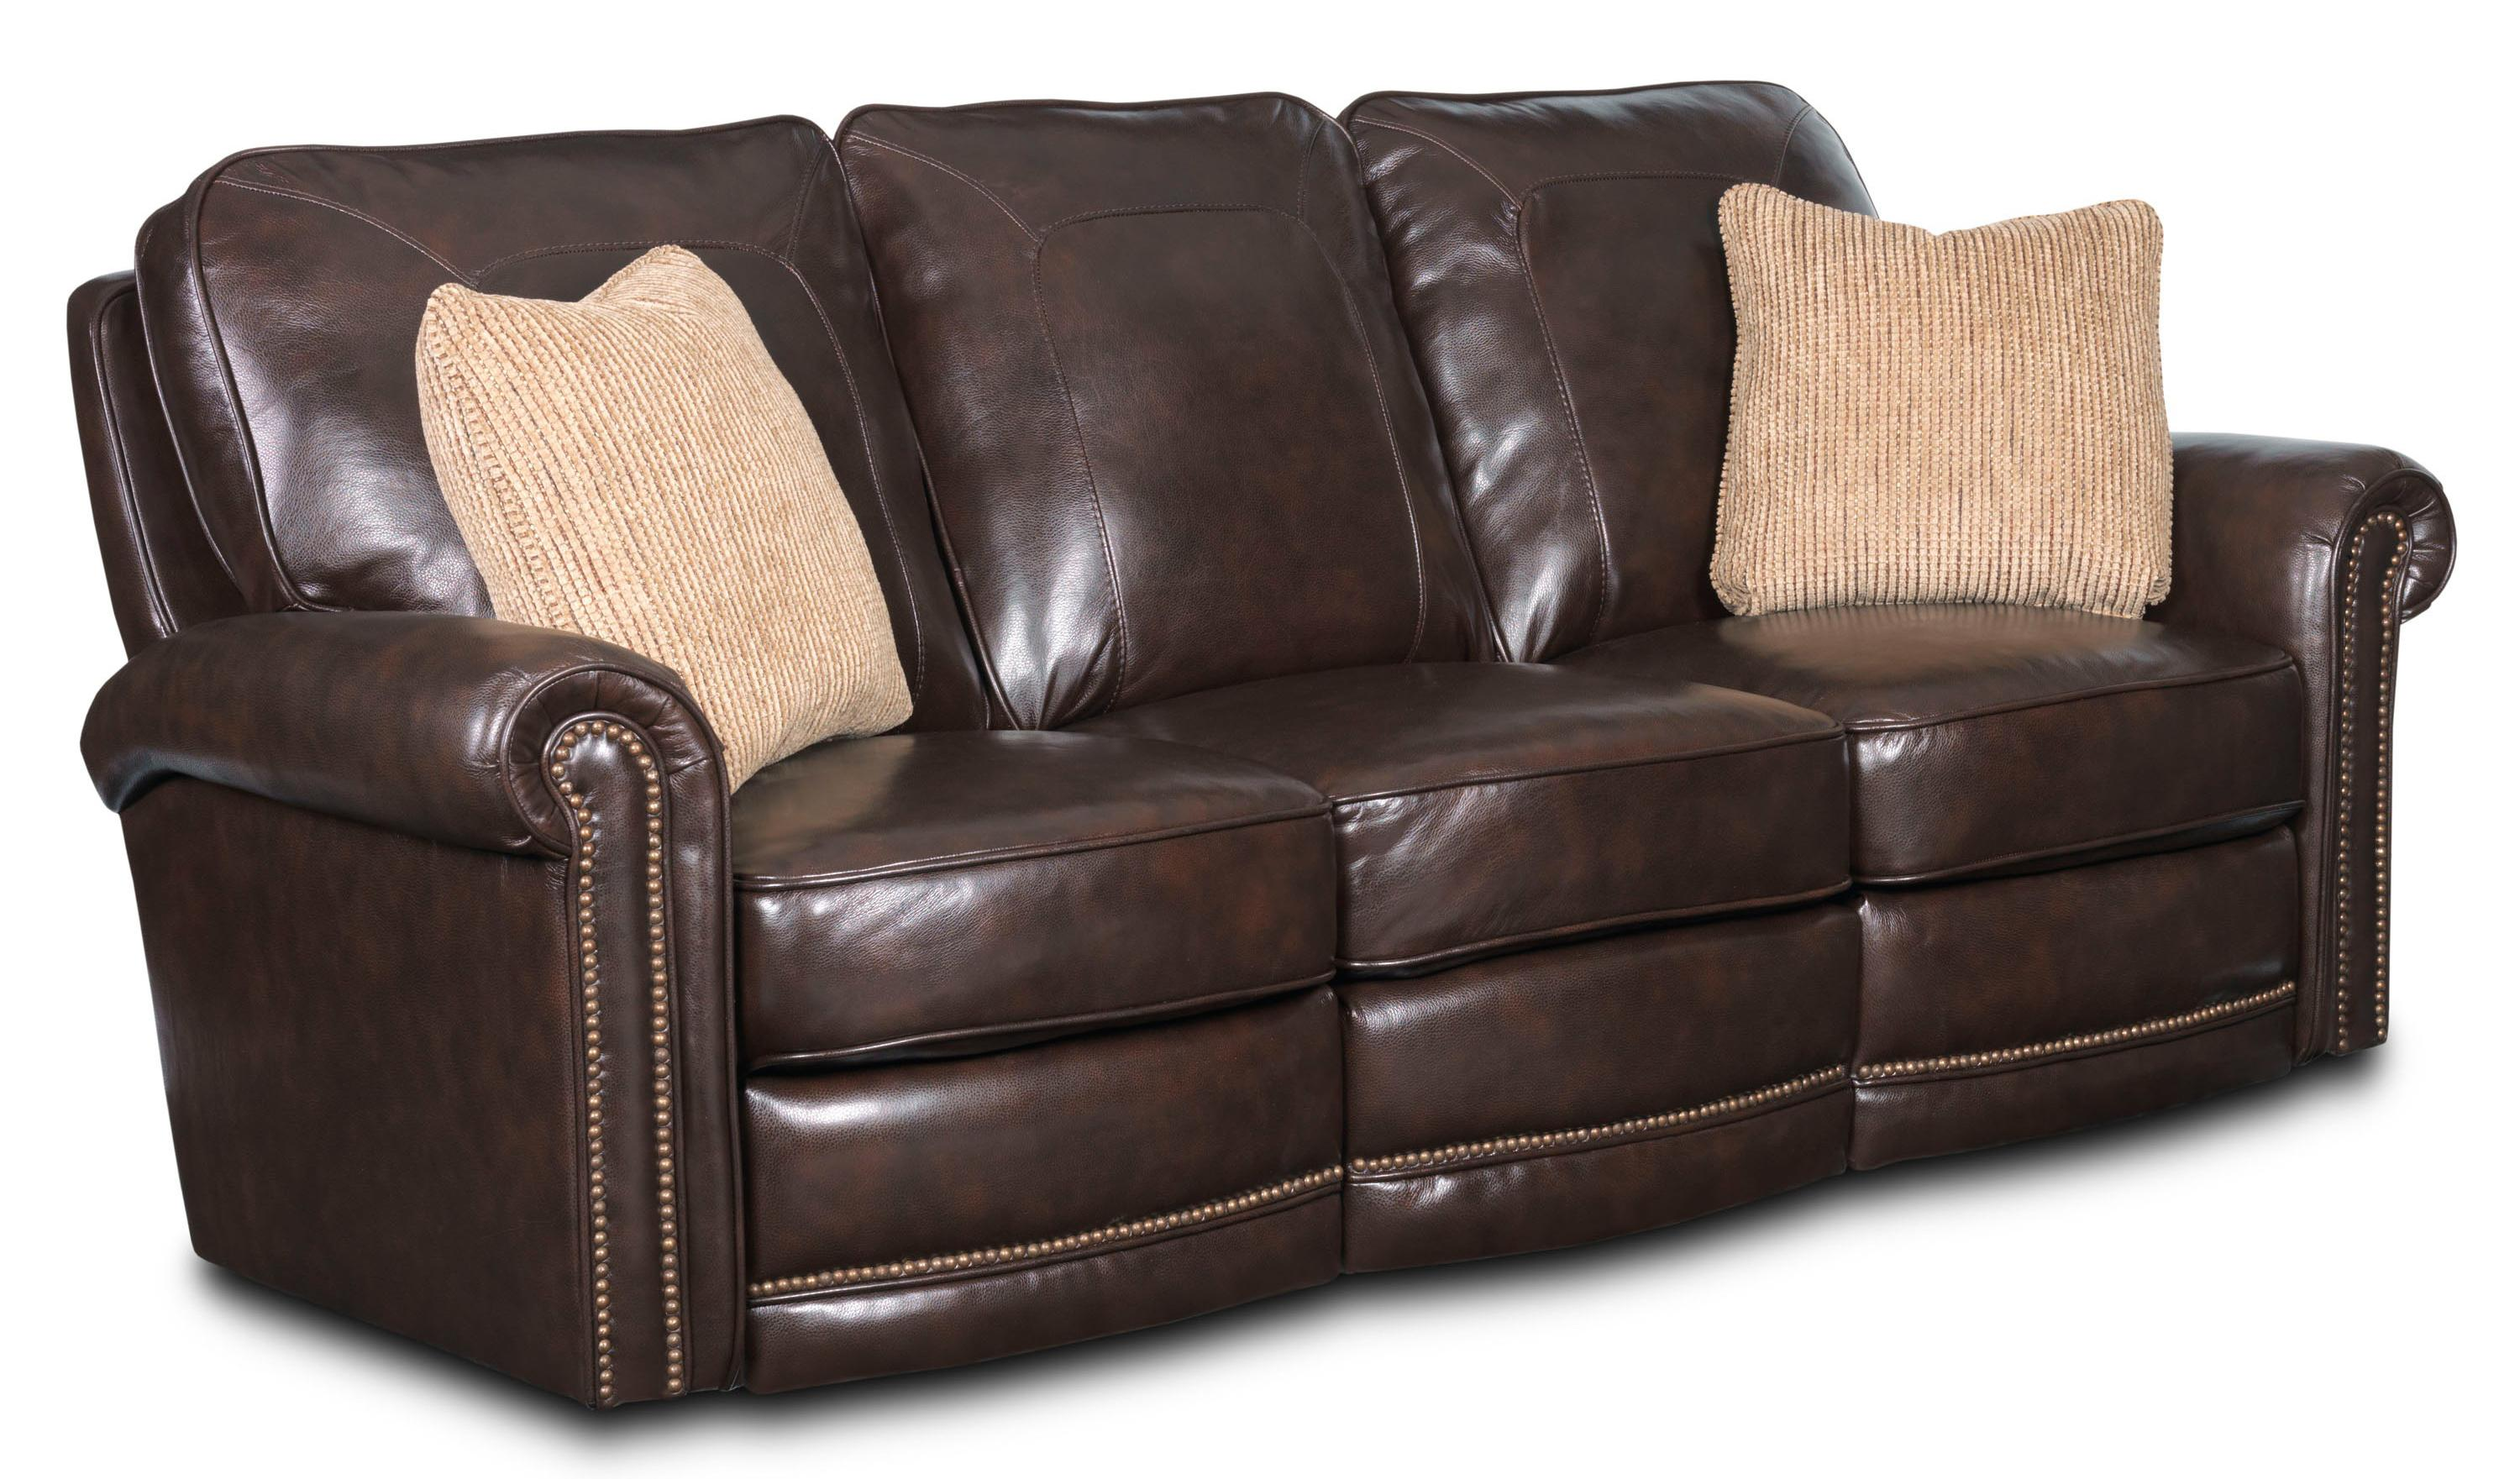 Incredible Jasmine Traditional Power Reclining Sofa By Lane At Runes Furniture Beutiful Home Inspiration Truamahrainfo